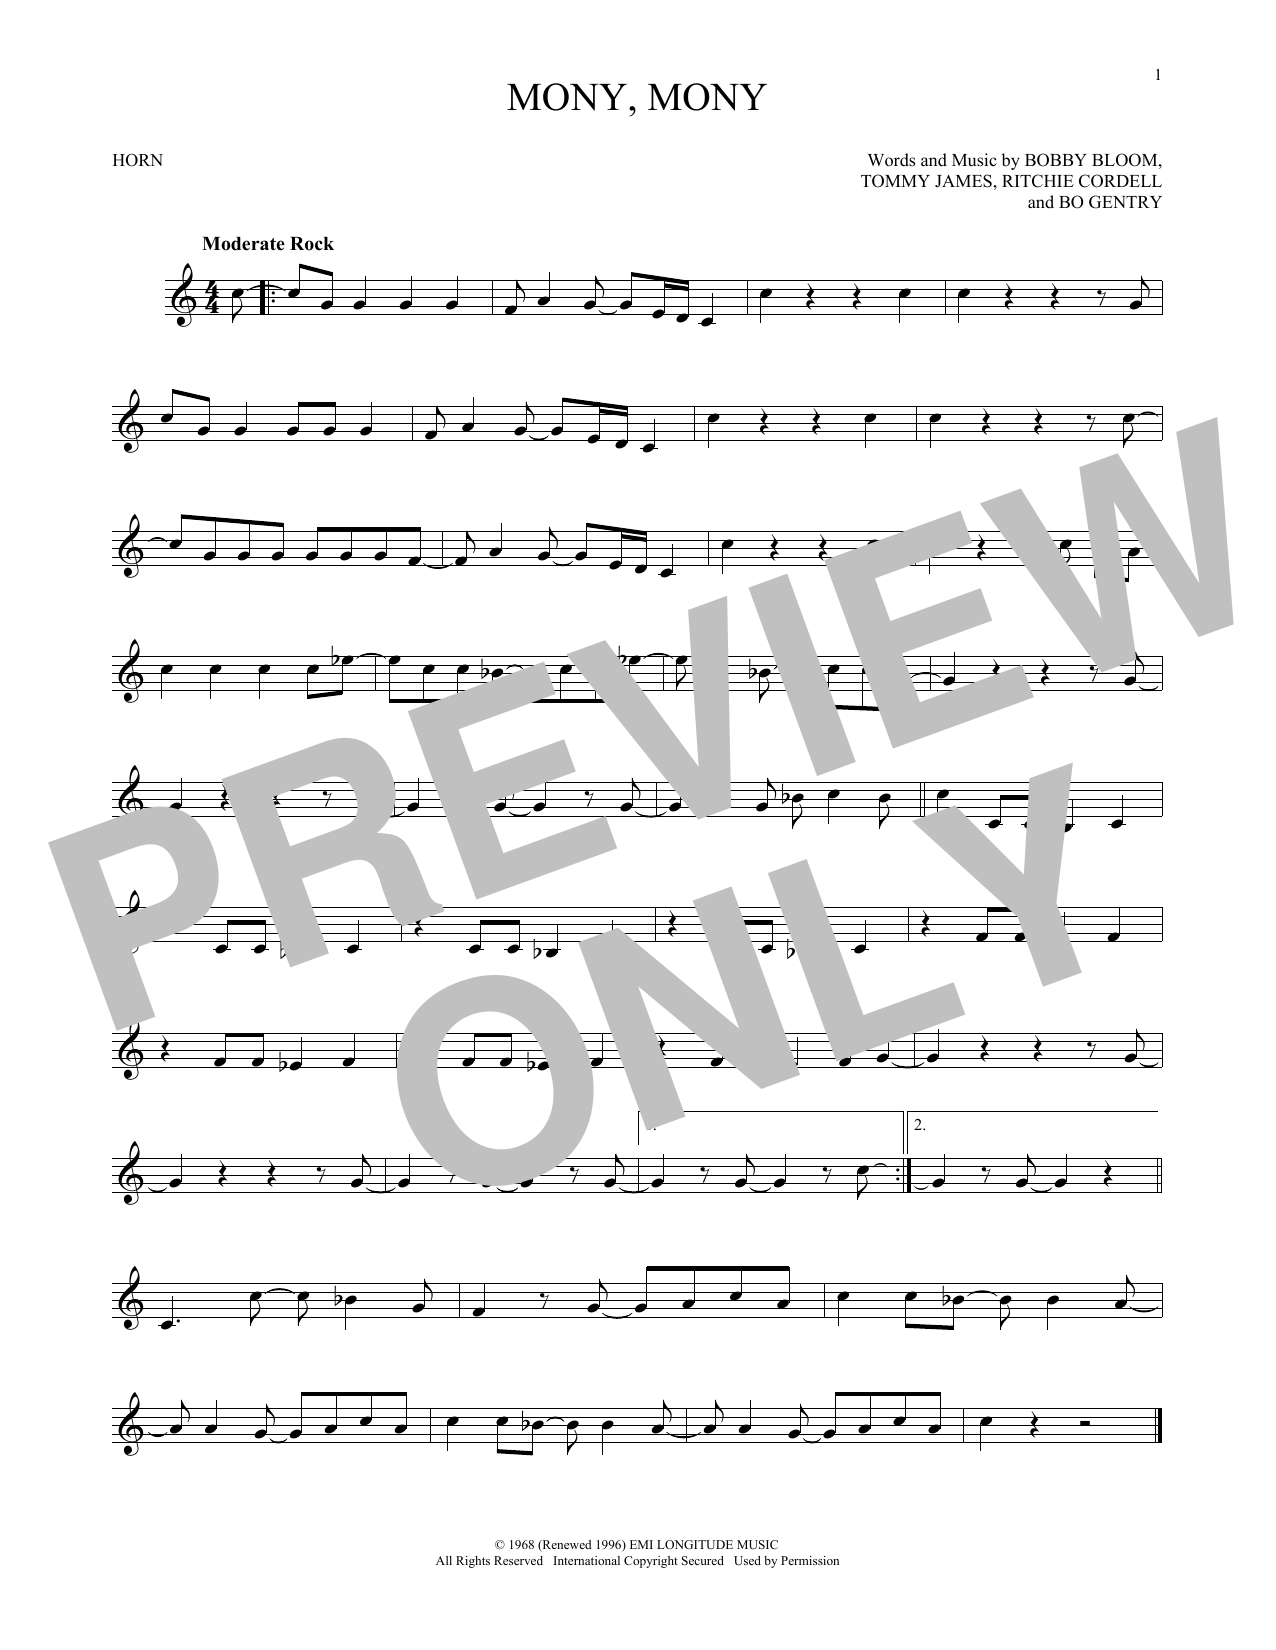 Sheet Music Digital Files To Print Licensed Tommy James The